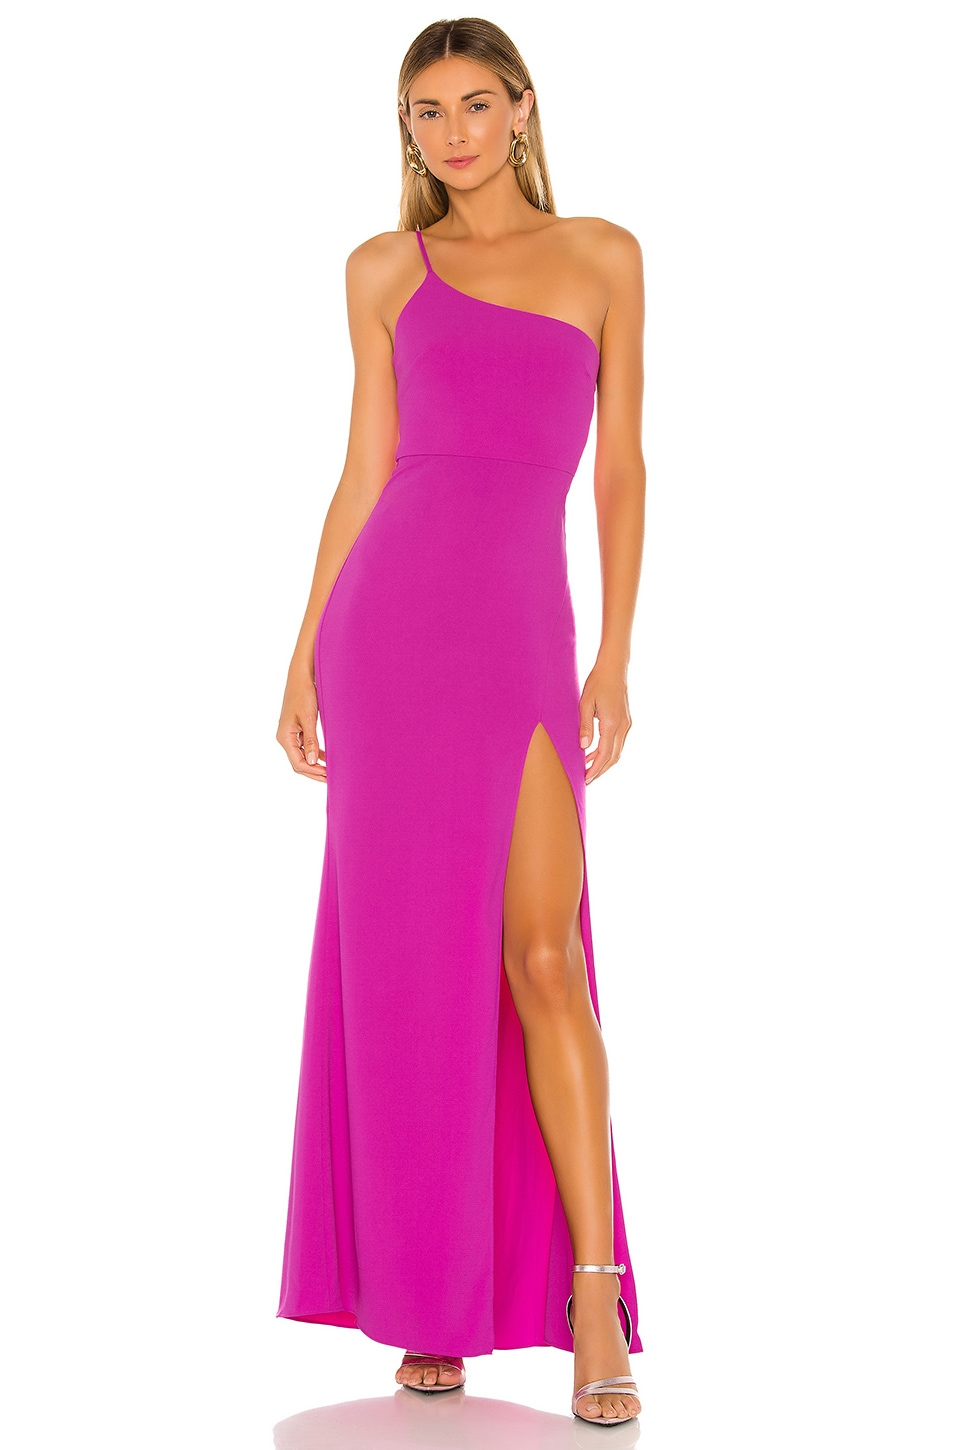 Lovers + Friends Eve Gown in Rose Violet